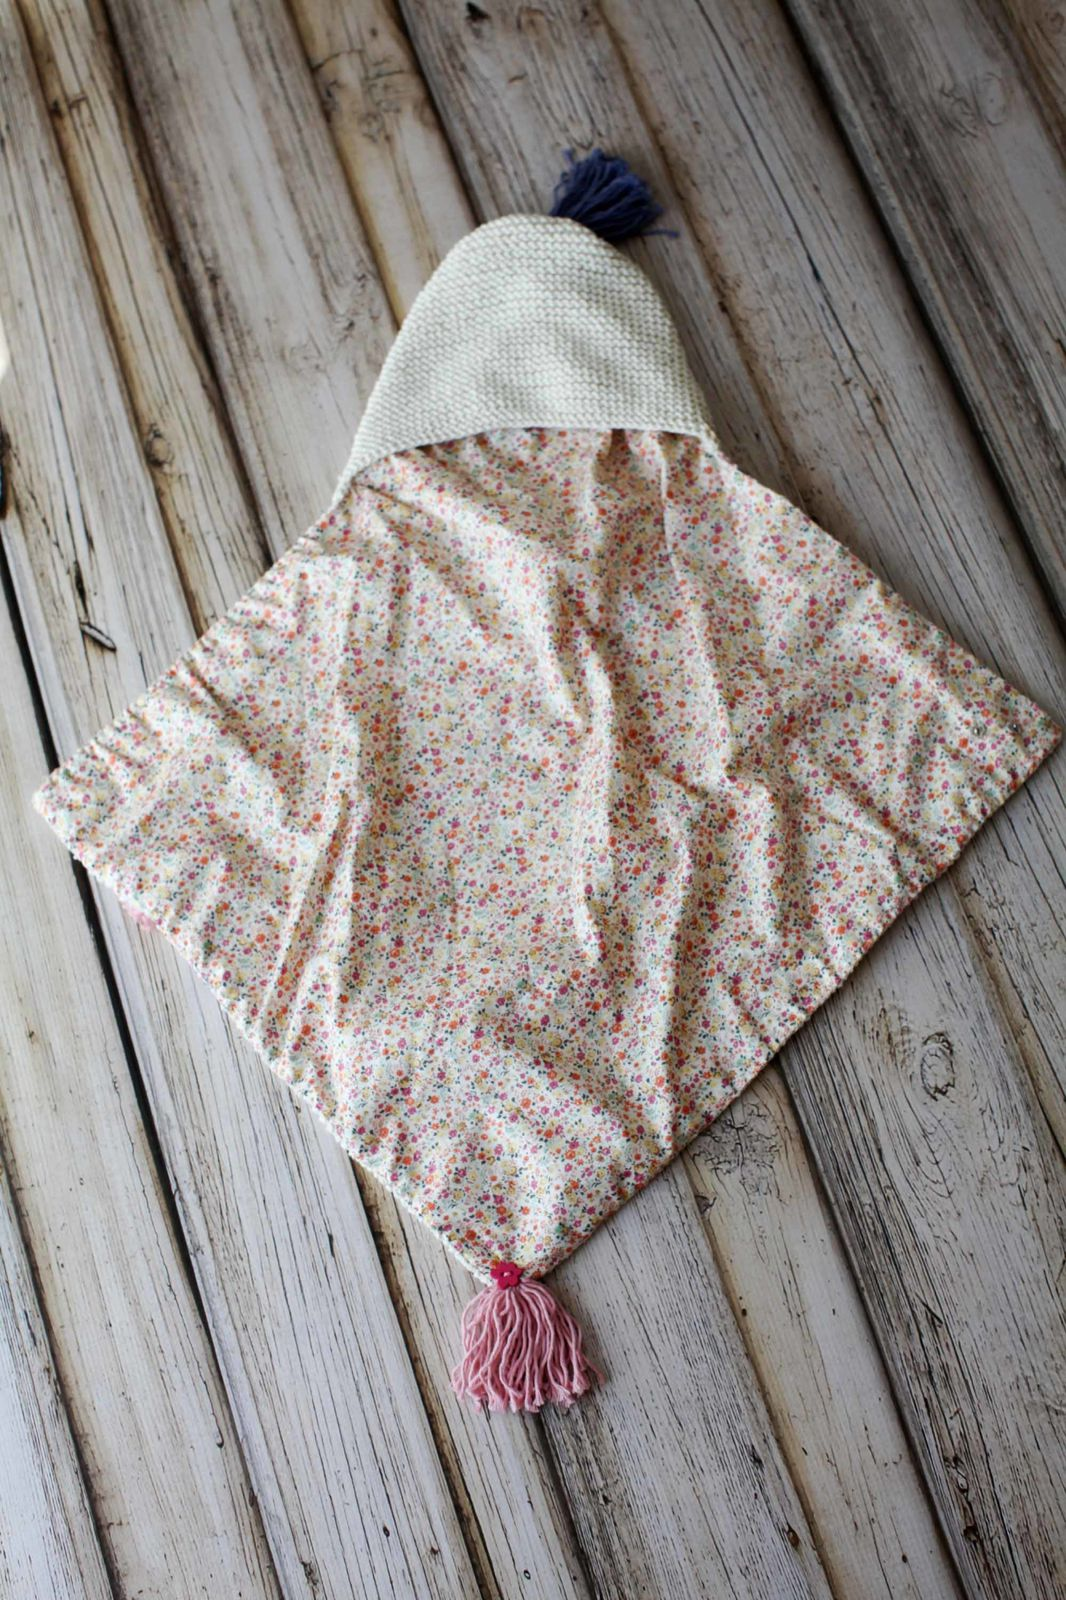 White baby cocoon made of organic cotton